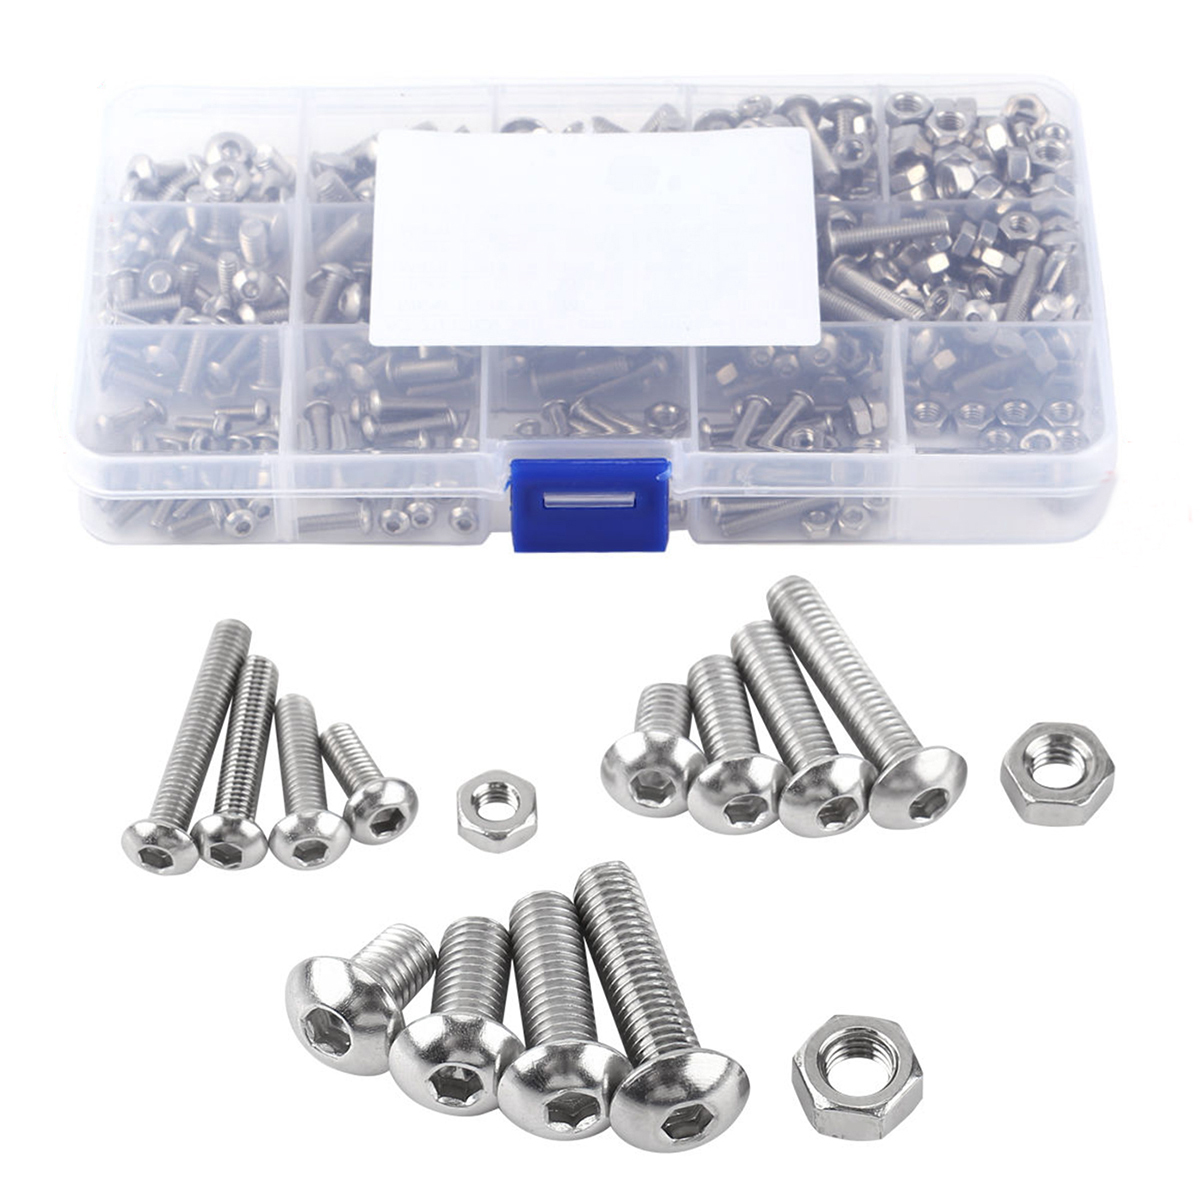 440pcs Assorted 304 Stainless Steel Screws M3 M4 M5 Hex Socket Button Head Bolts Screw Nuts Set m3 bolt 300pcs set m3 screws m3 bolts hex socket round head screw stainless steel 304 screw bolts assortment in box parafuso